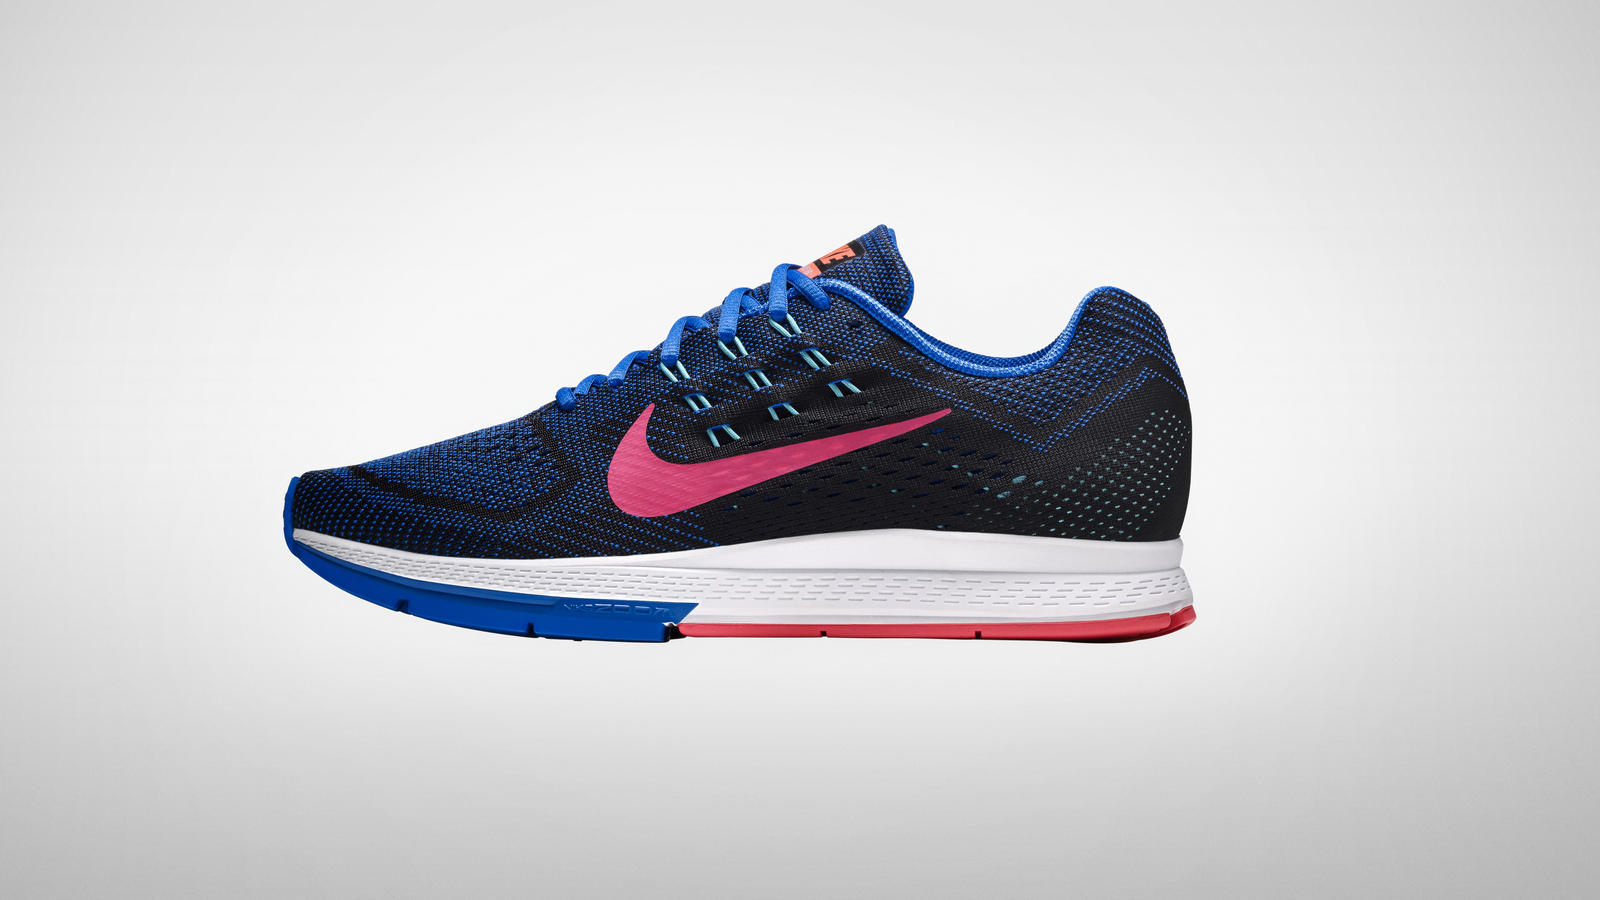 timeless design 76551 5355f clearance nike air zoom structure 18 womens running shoe colorhot lava  light aqua eb387 f44d9  australia three time world champion and double gold  medalist ...